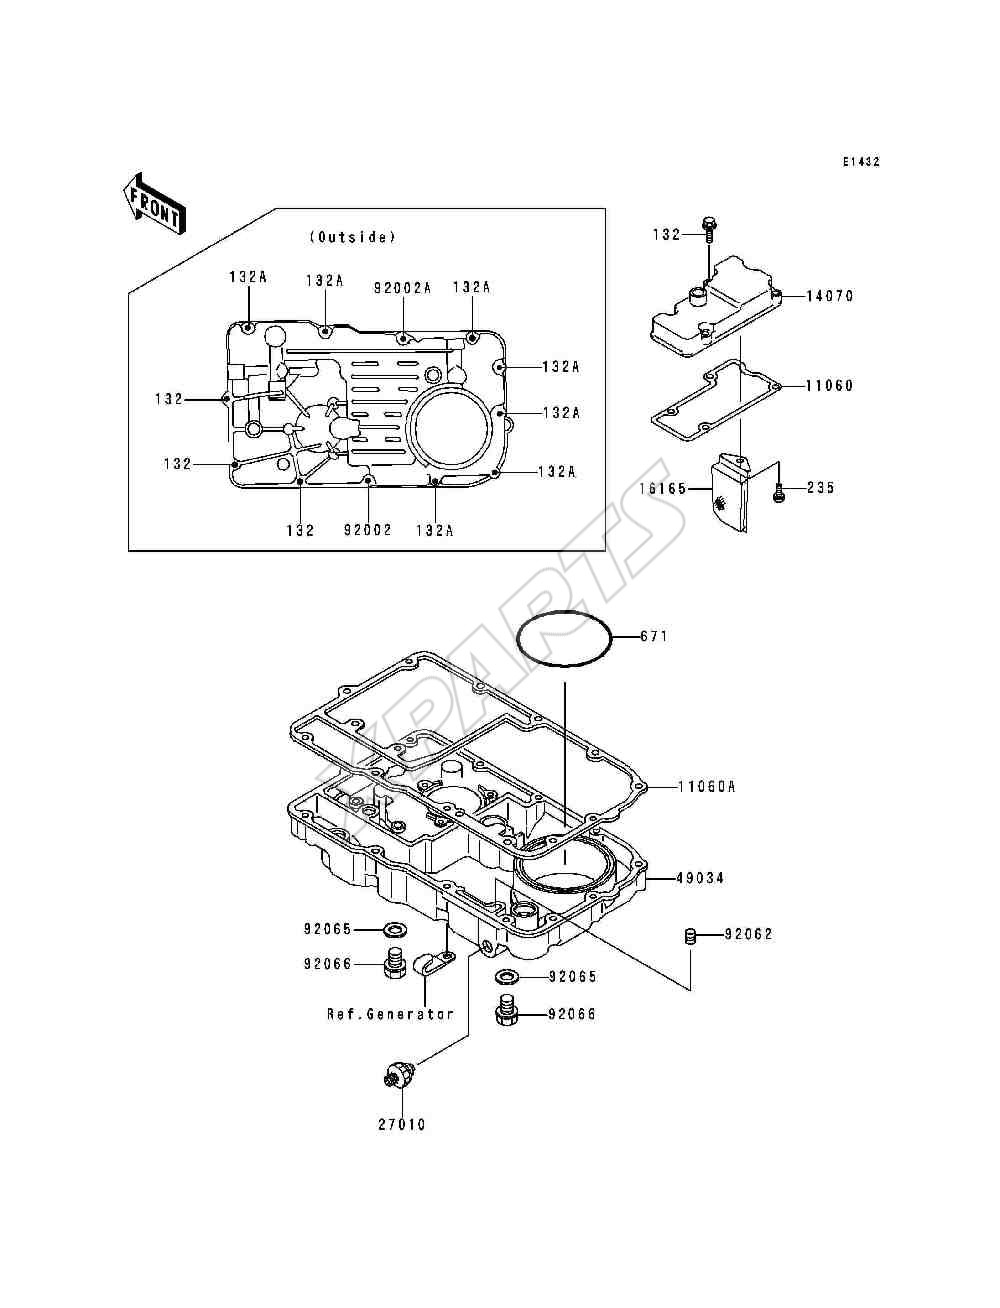 1999 Voyager Xii Zg1200 B13 Kawasaki Wiring Diagram Picture For Category Breather Cover Oil Pan